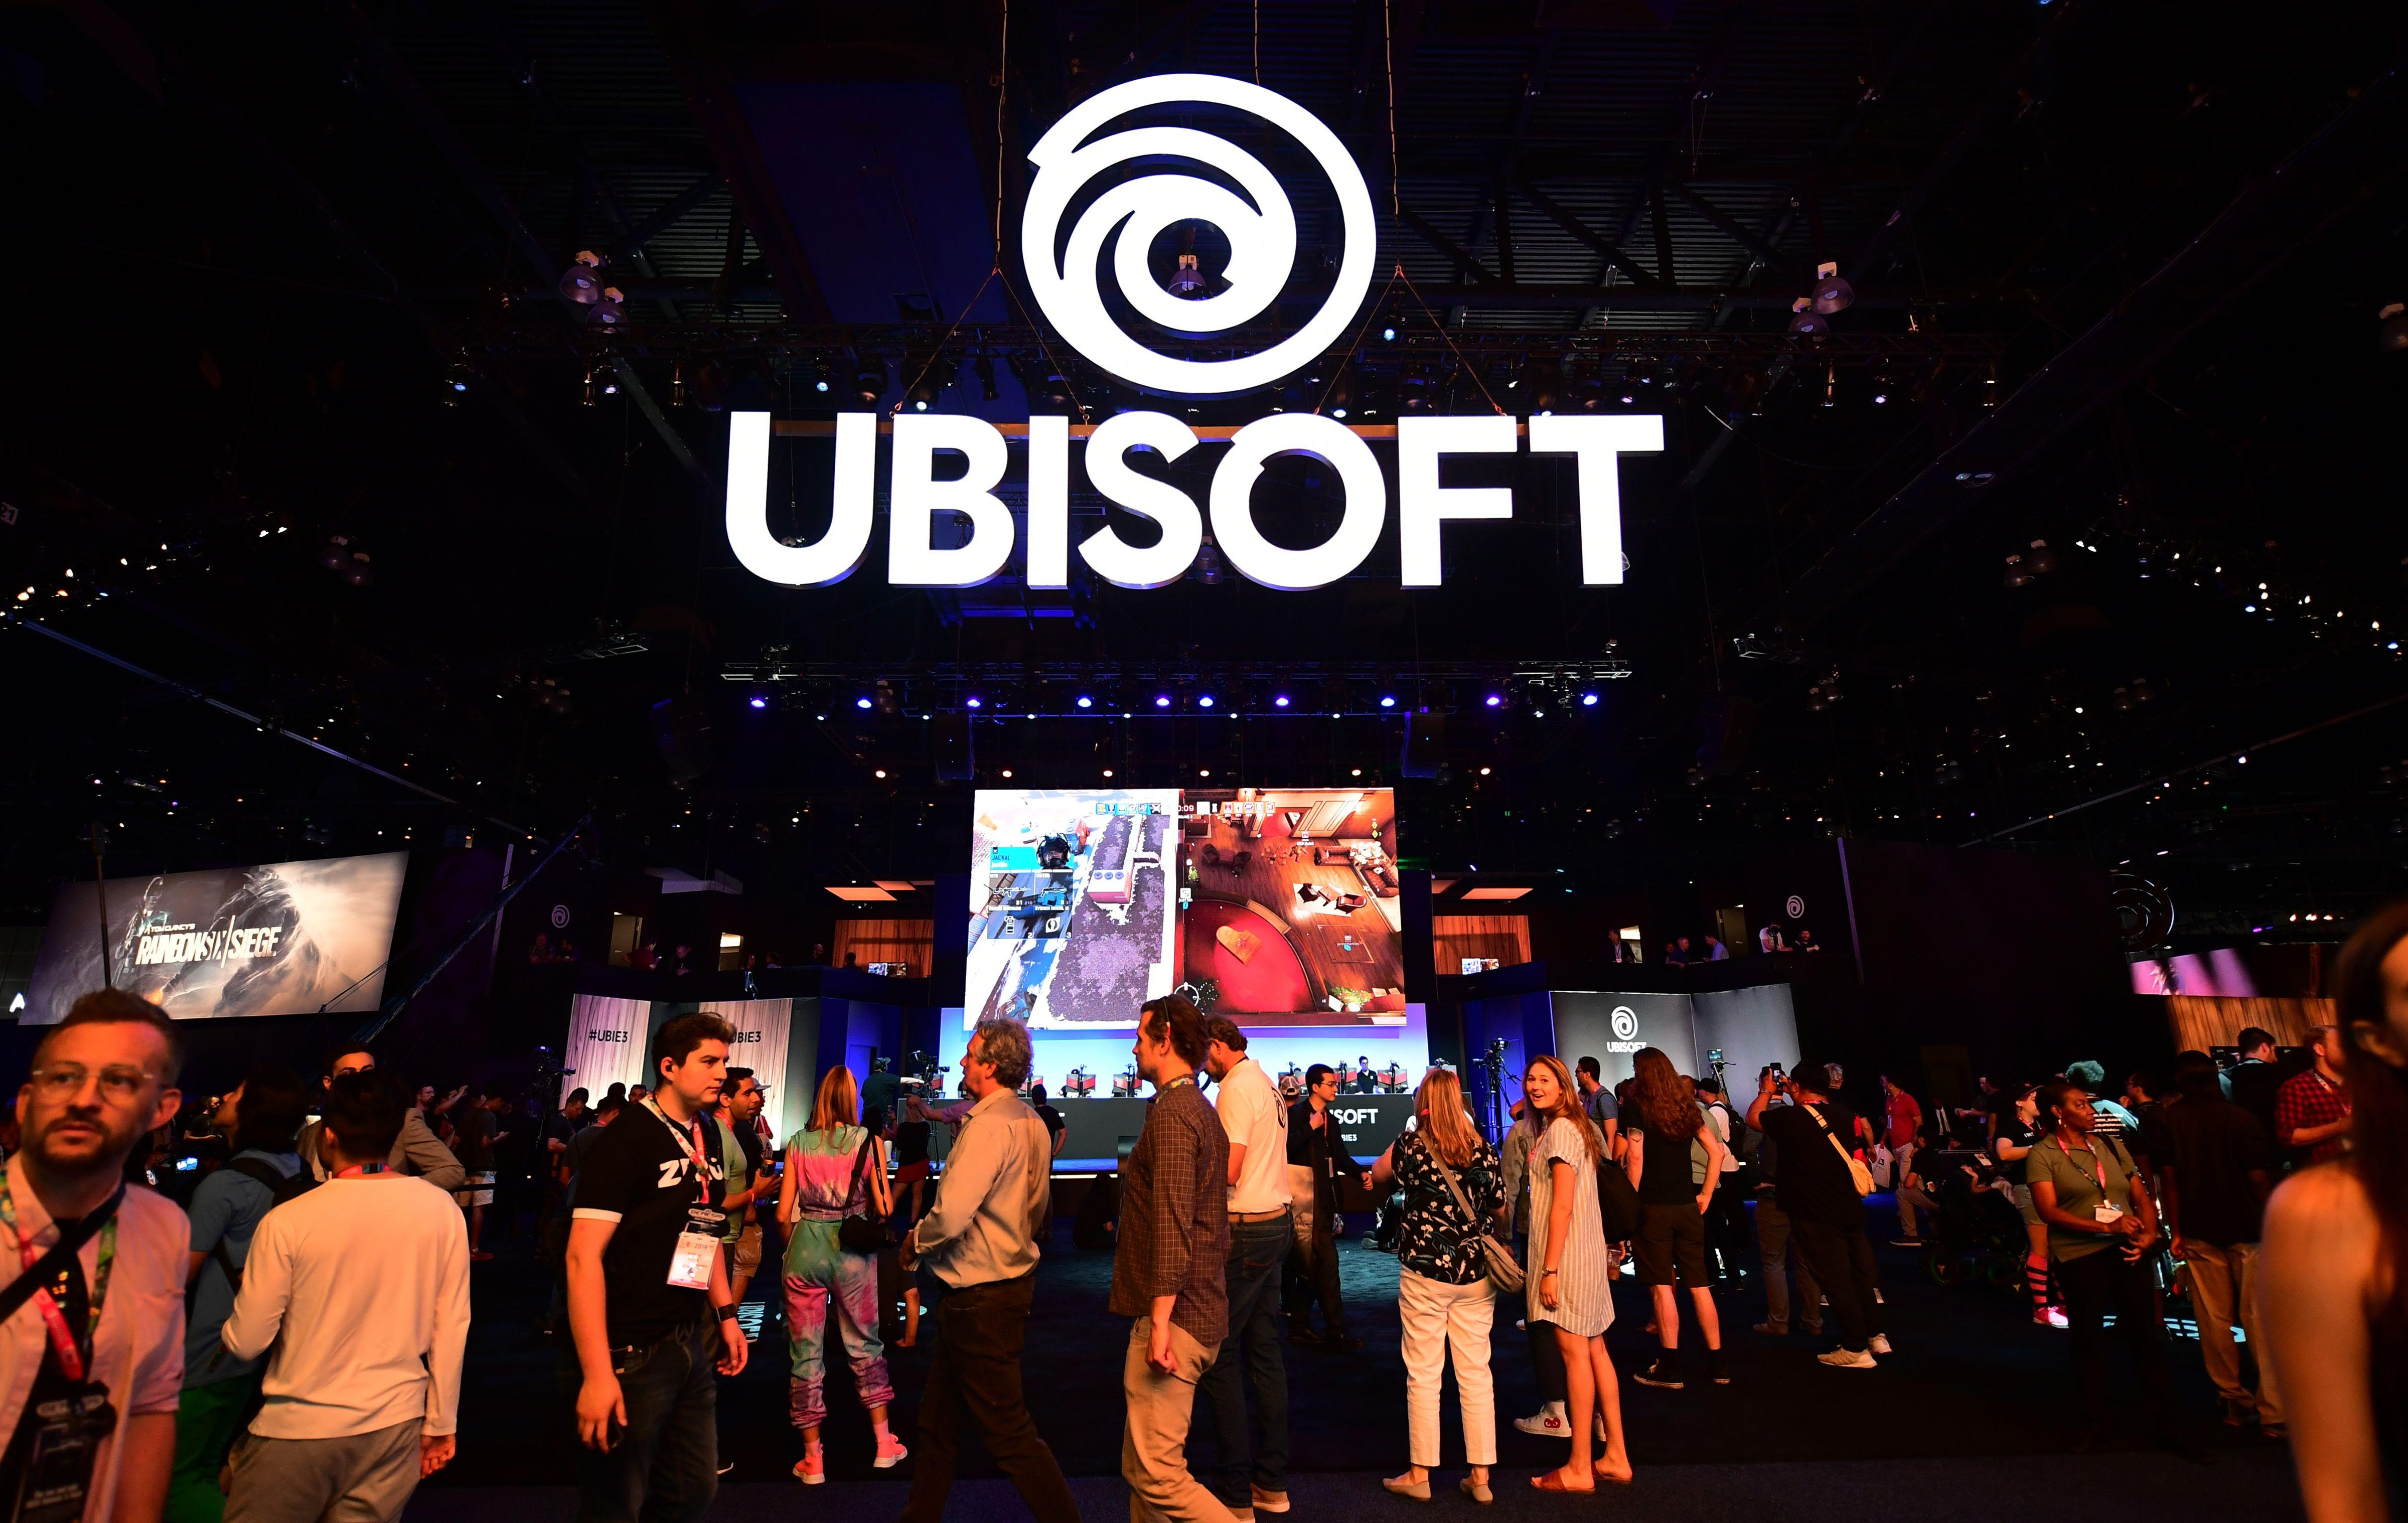 Top managers fired from Ubisoft over 'toxic behaviour' allegations